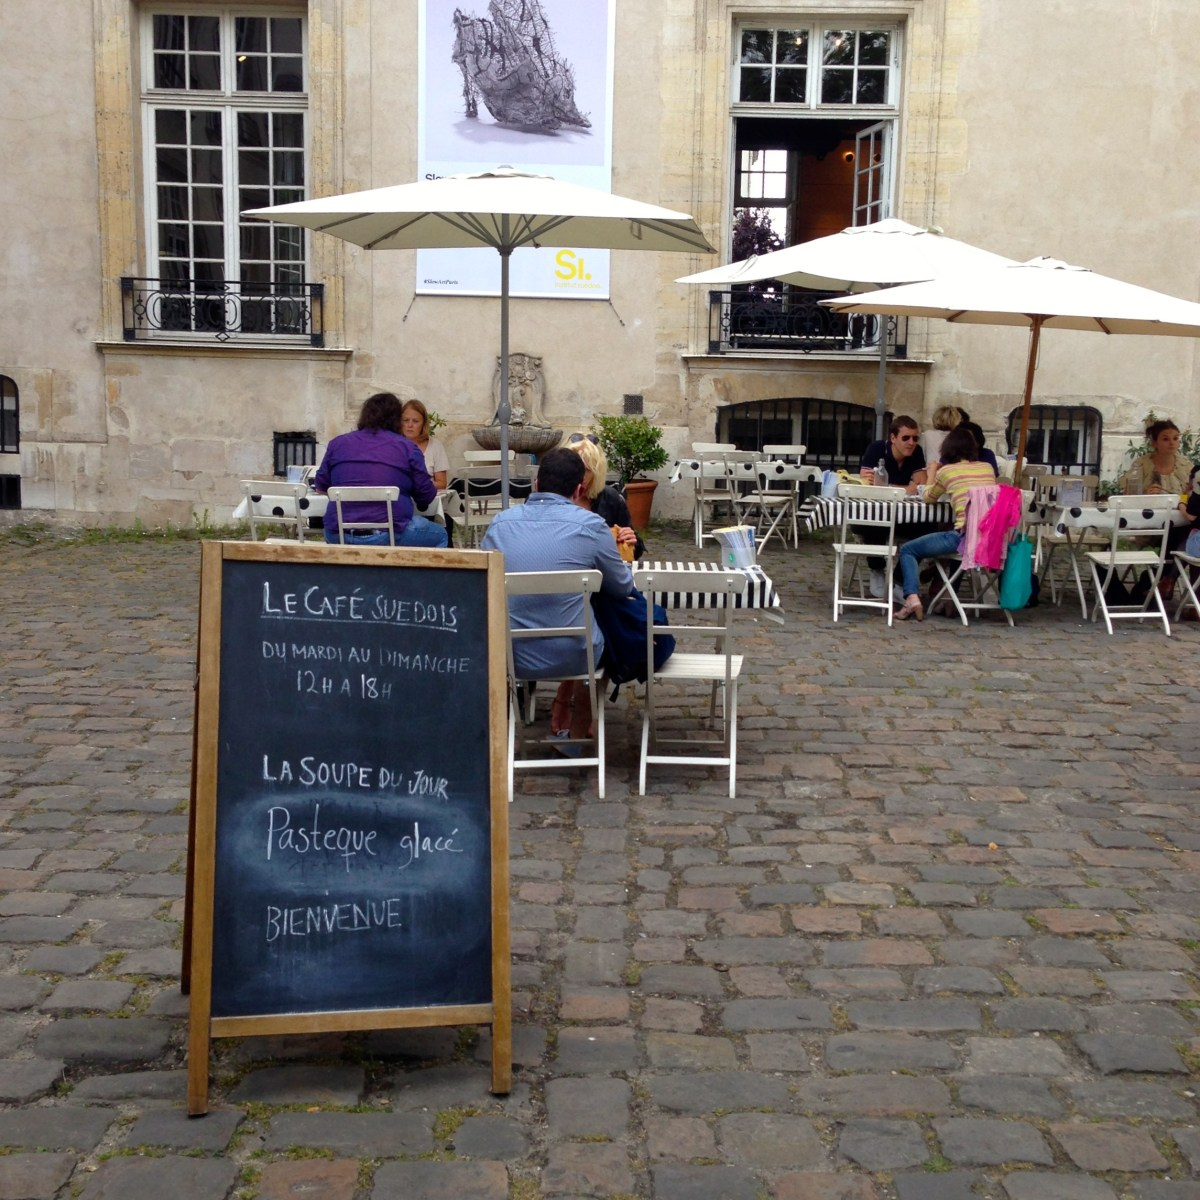 A Swedish Café and Garden in Paris